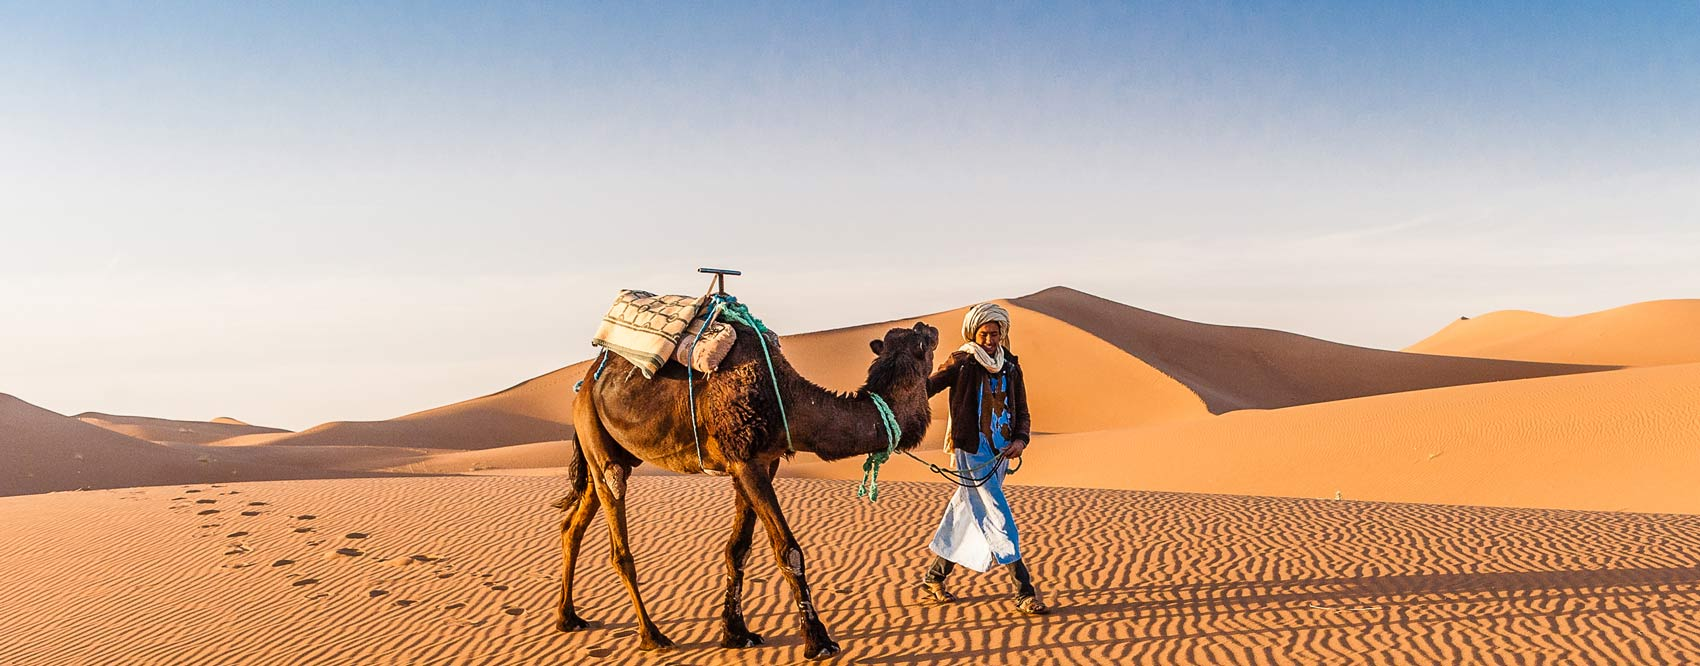 moroccan journeys camel trek